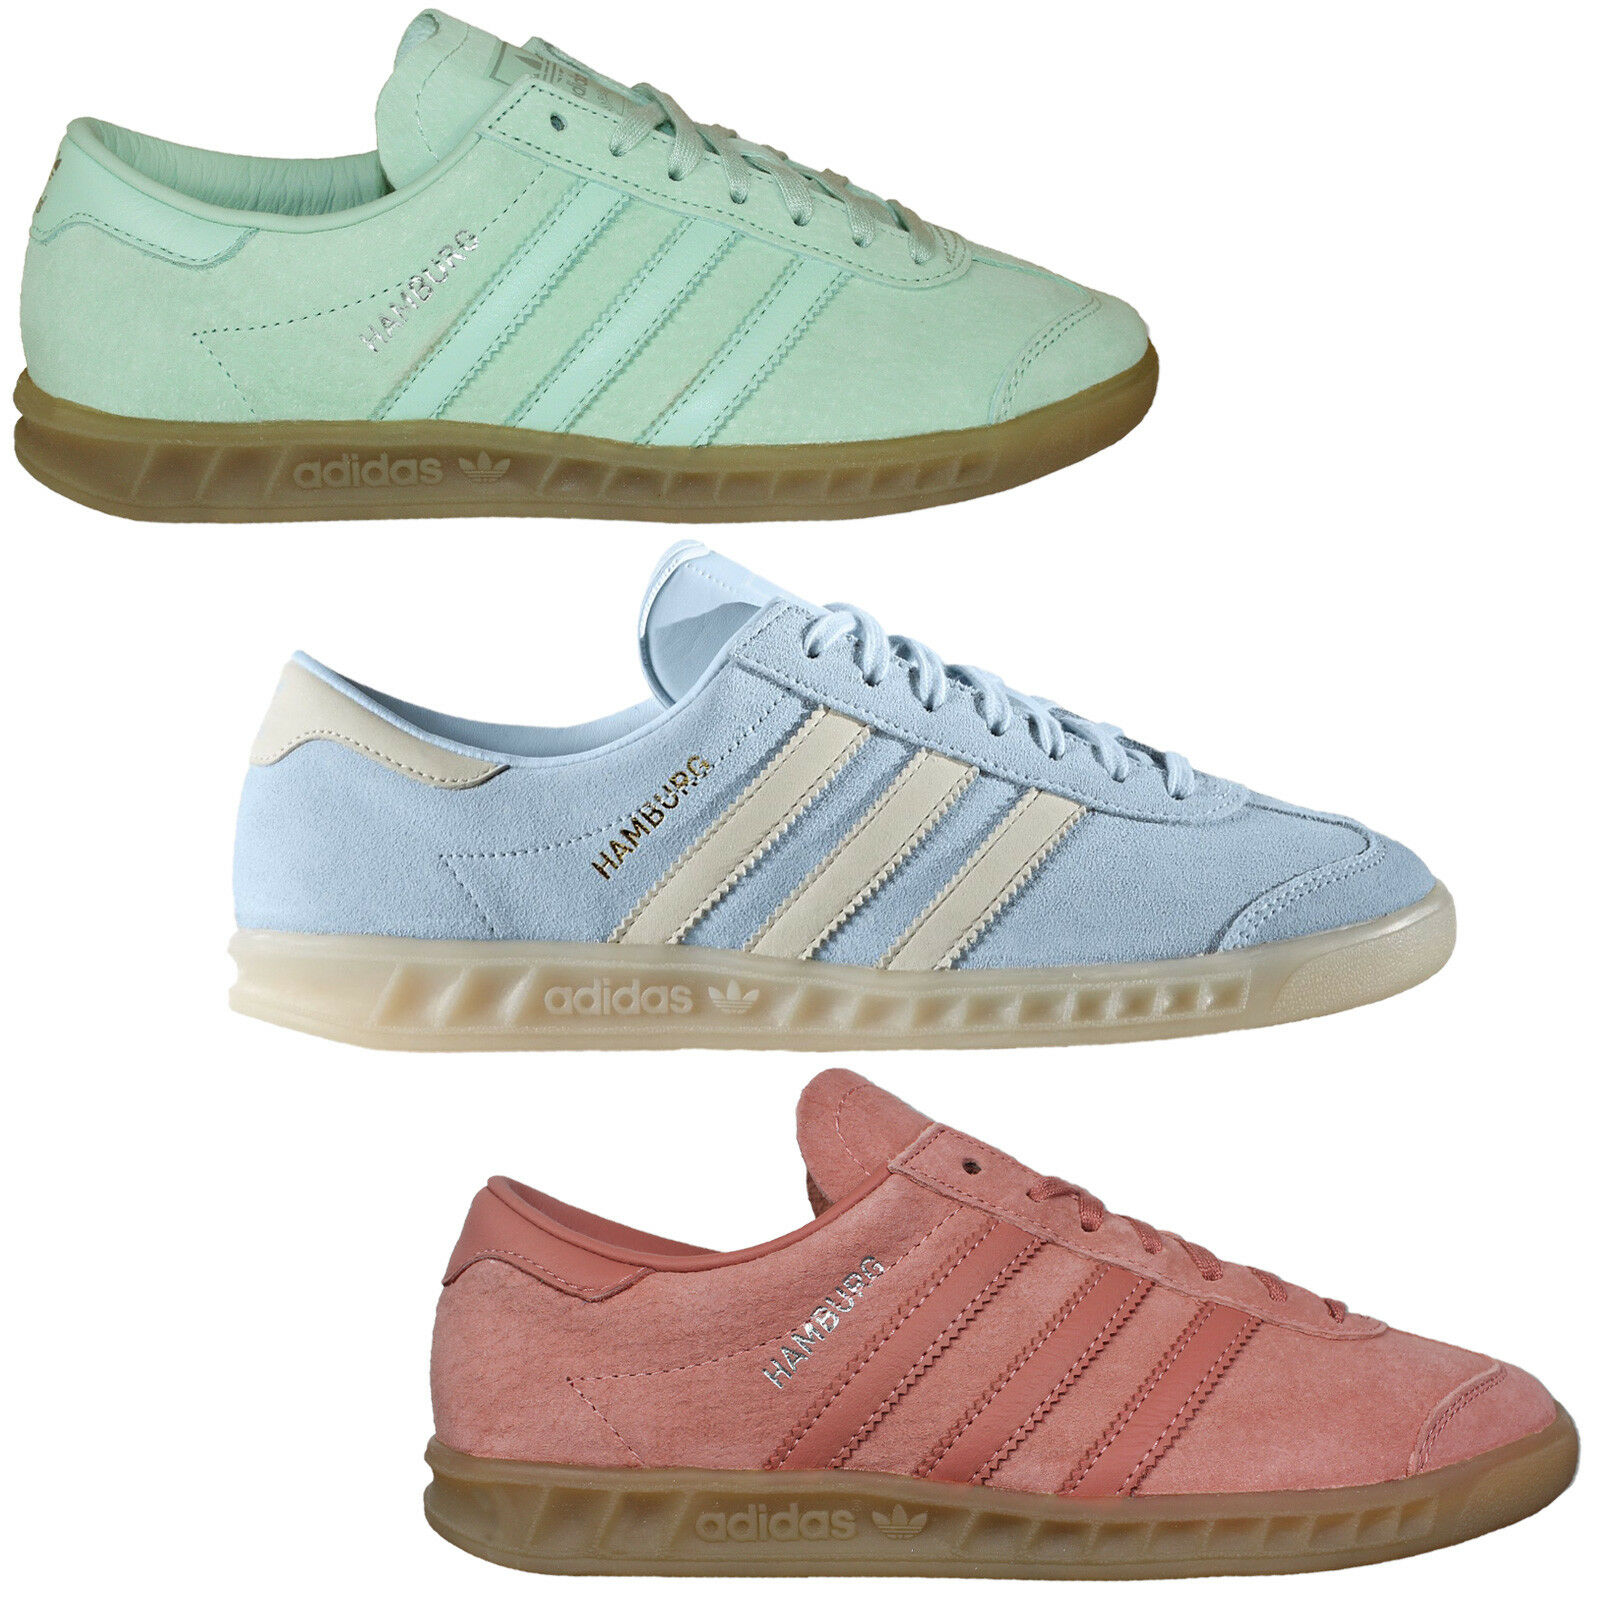 Adidas Originals Hamburg Ladies Sneaker shoes Leather shoes pink Mint Light bluee